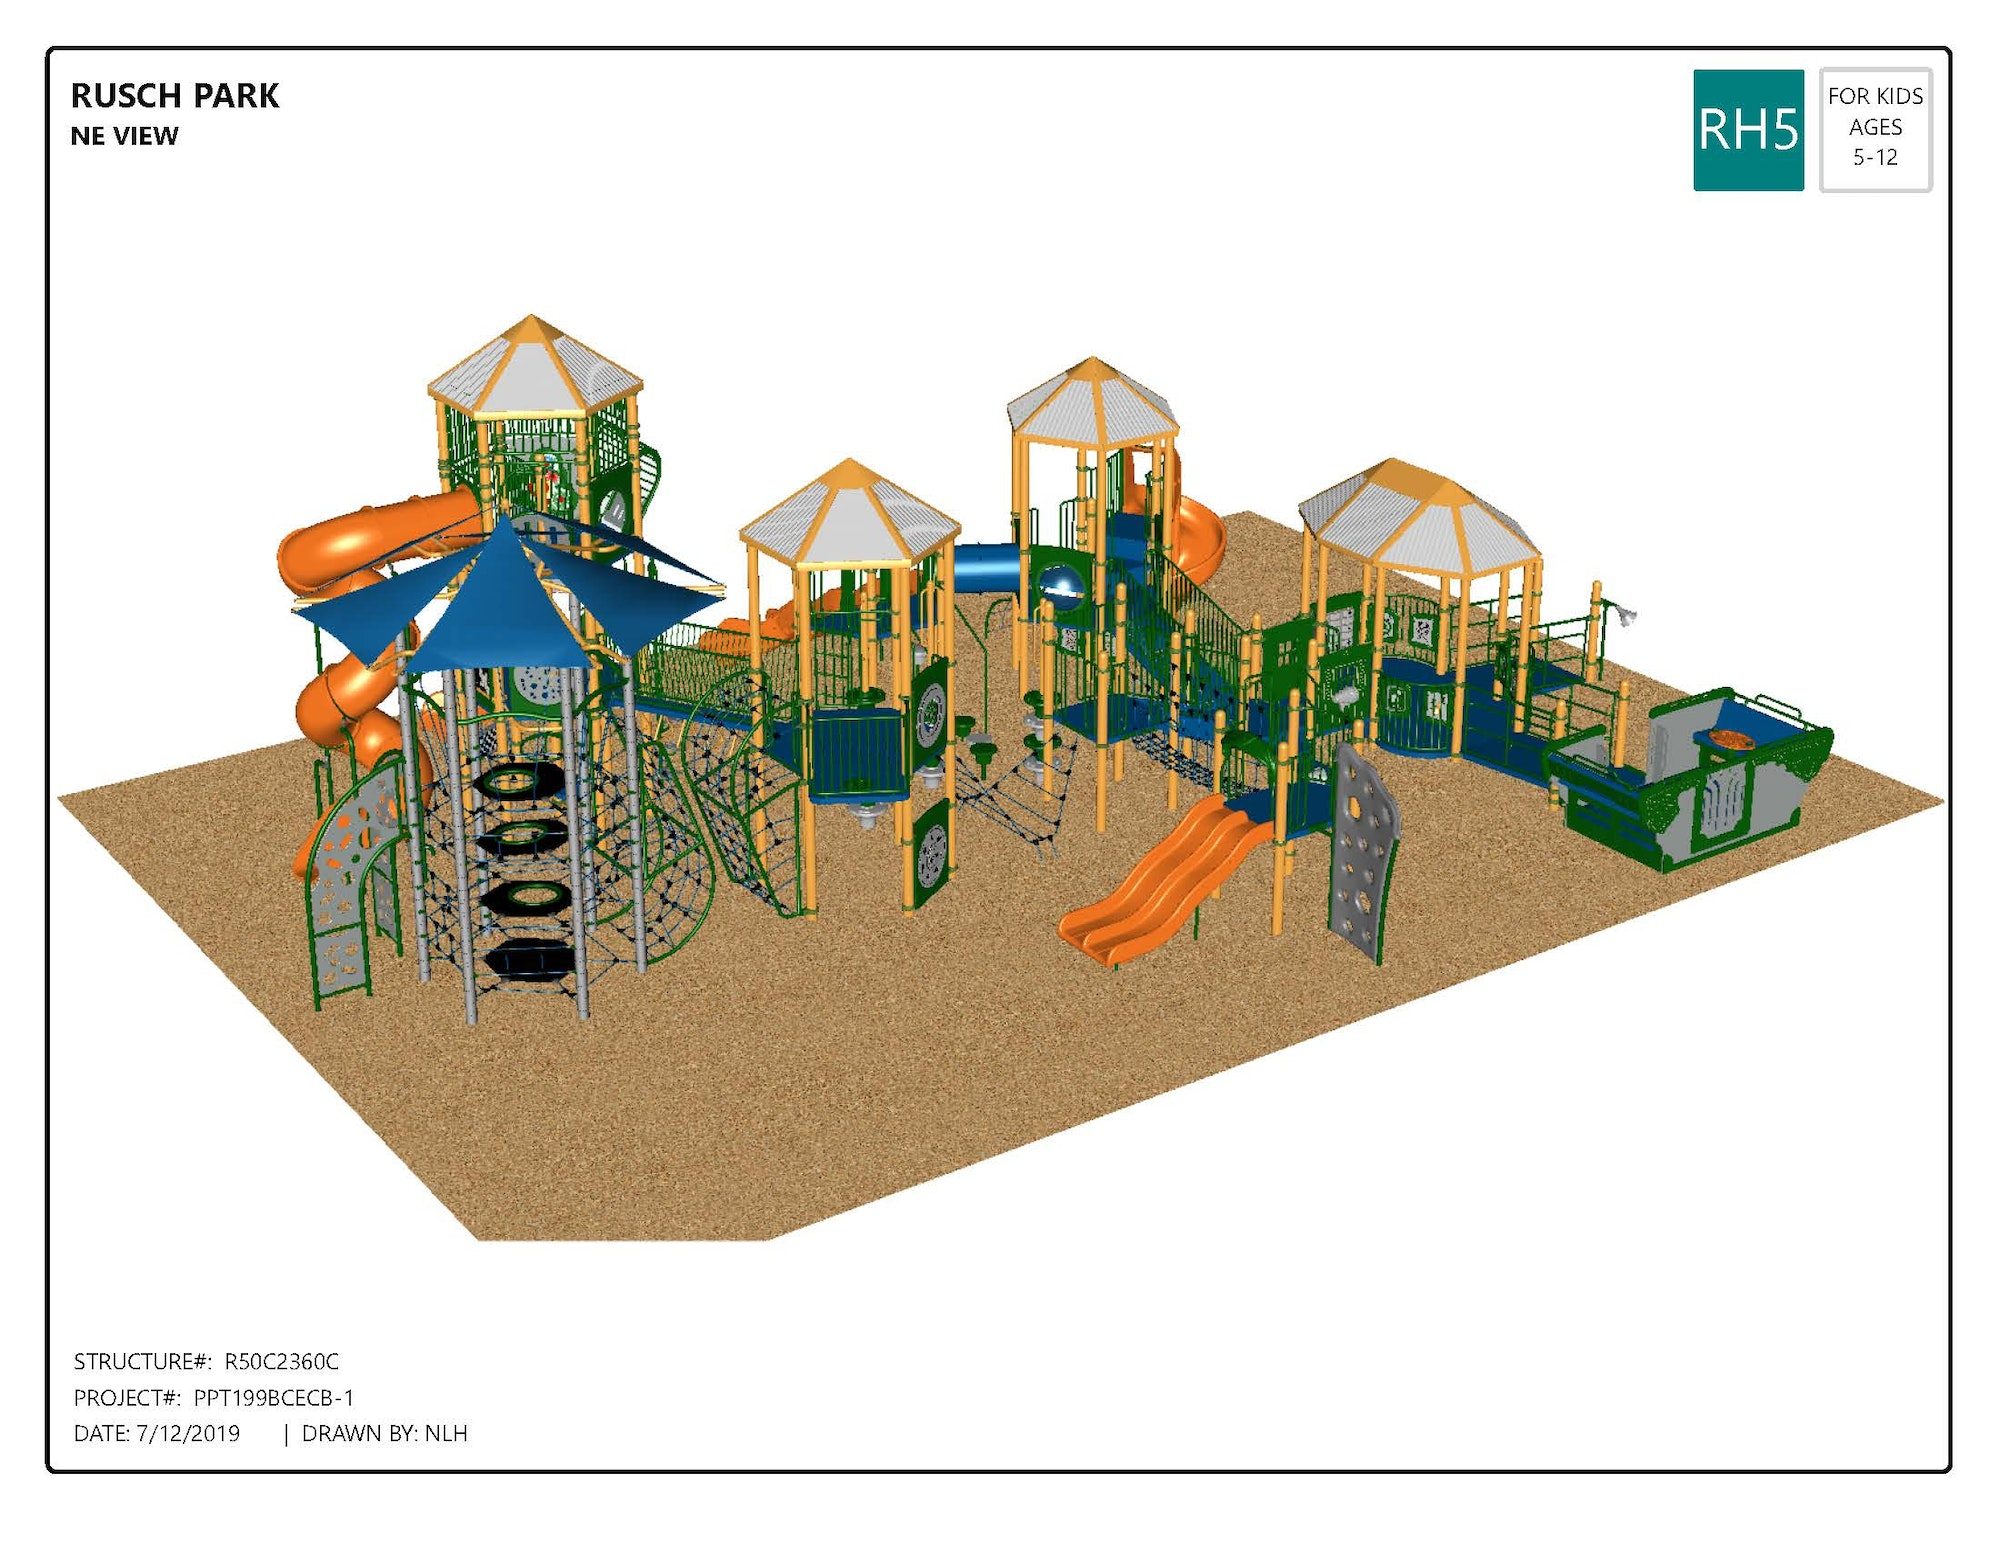 New Playground Coming Dec 2019